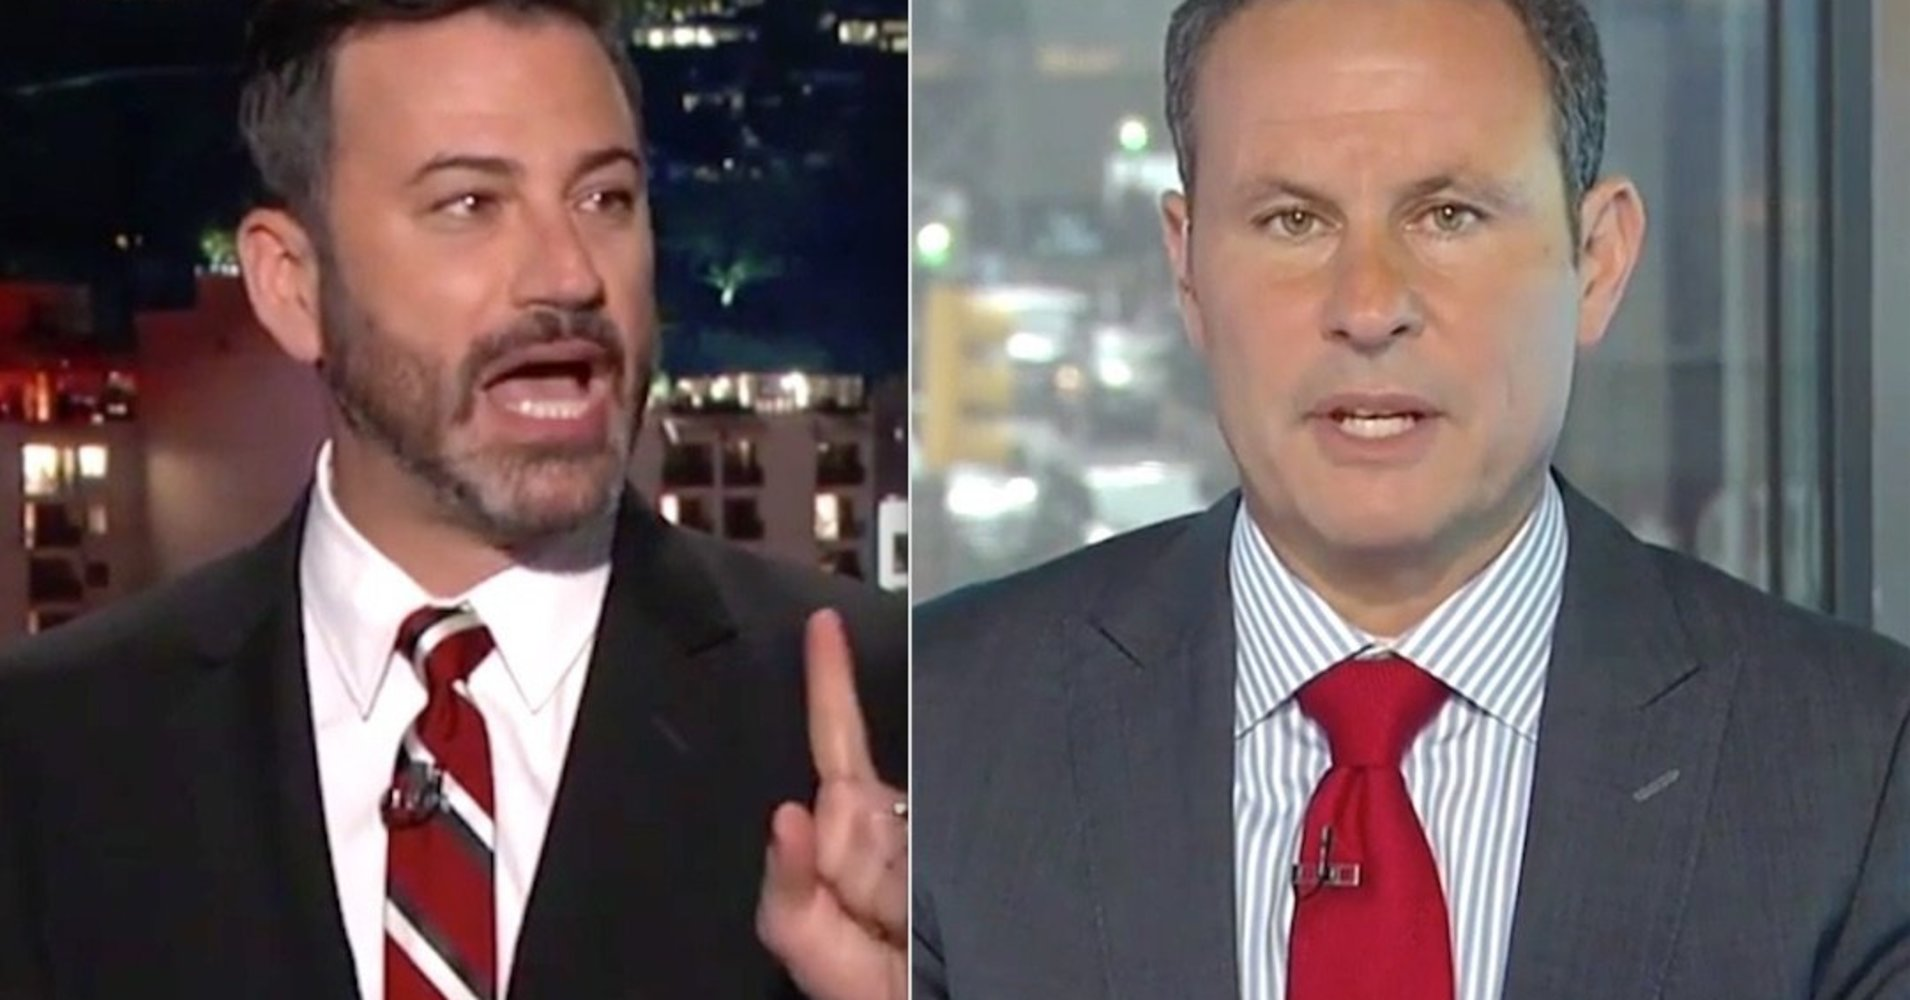 Jimmy Kimmel shreds Fox News host Brian Kilmeade as a 'phony little creep' https://t.co/cqHkyWomHv https://t.co/lmPdqsNL10